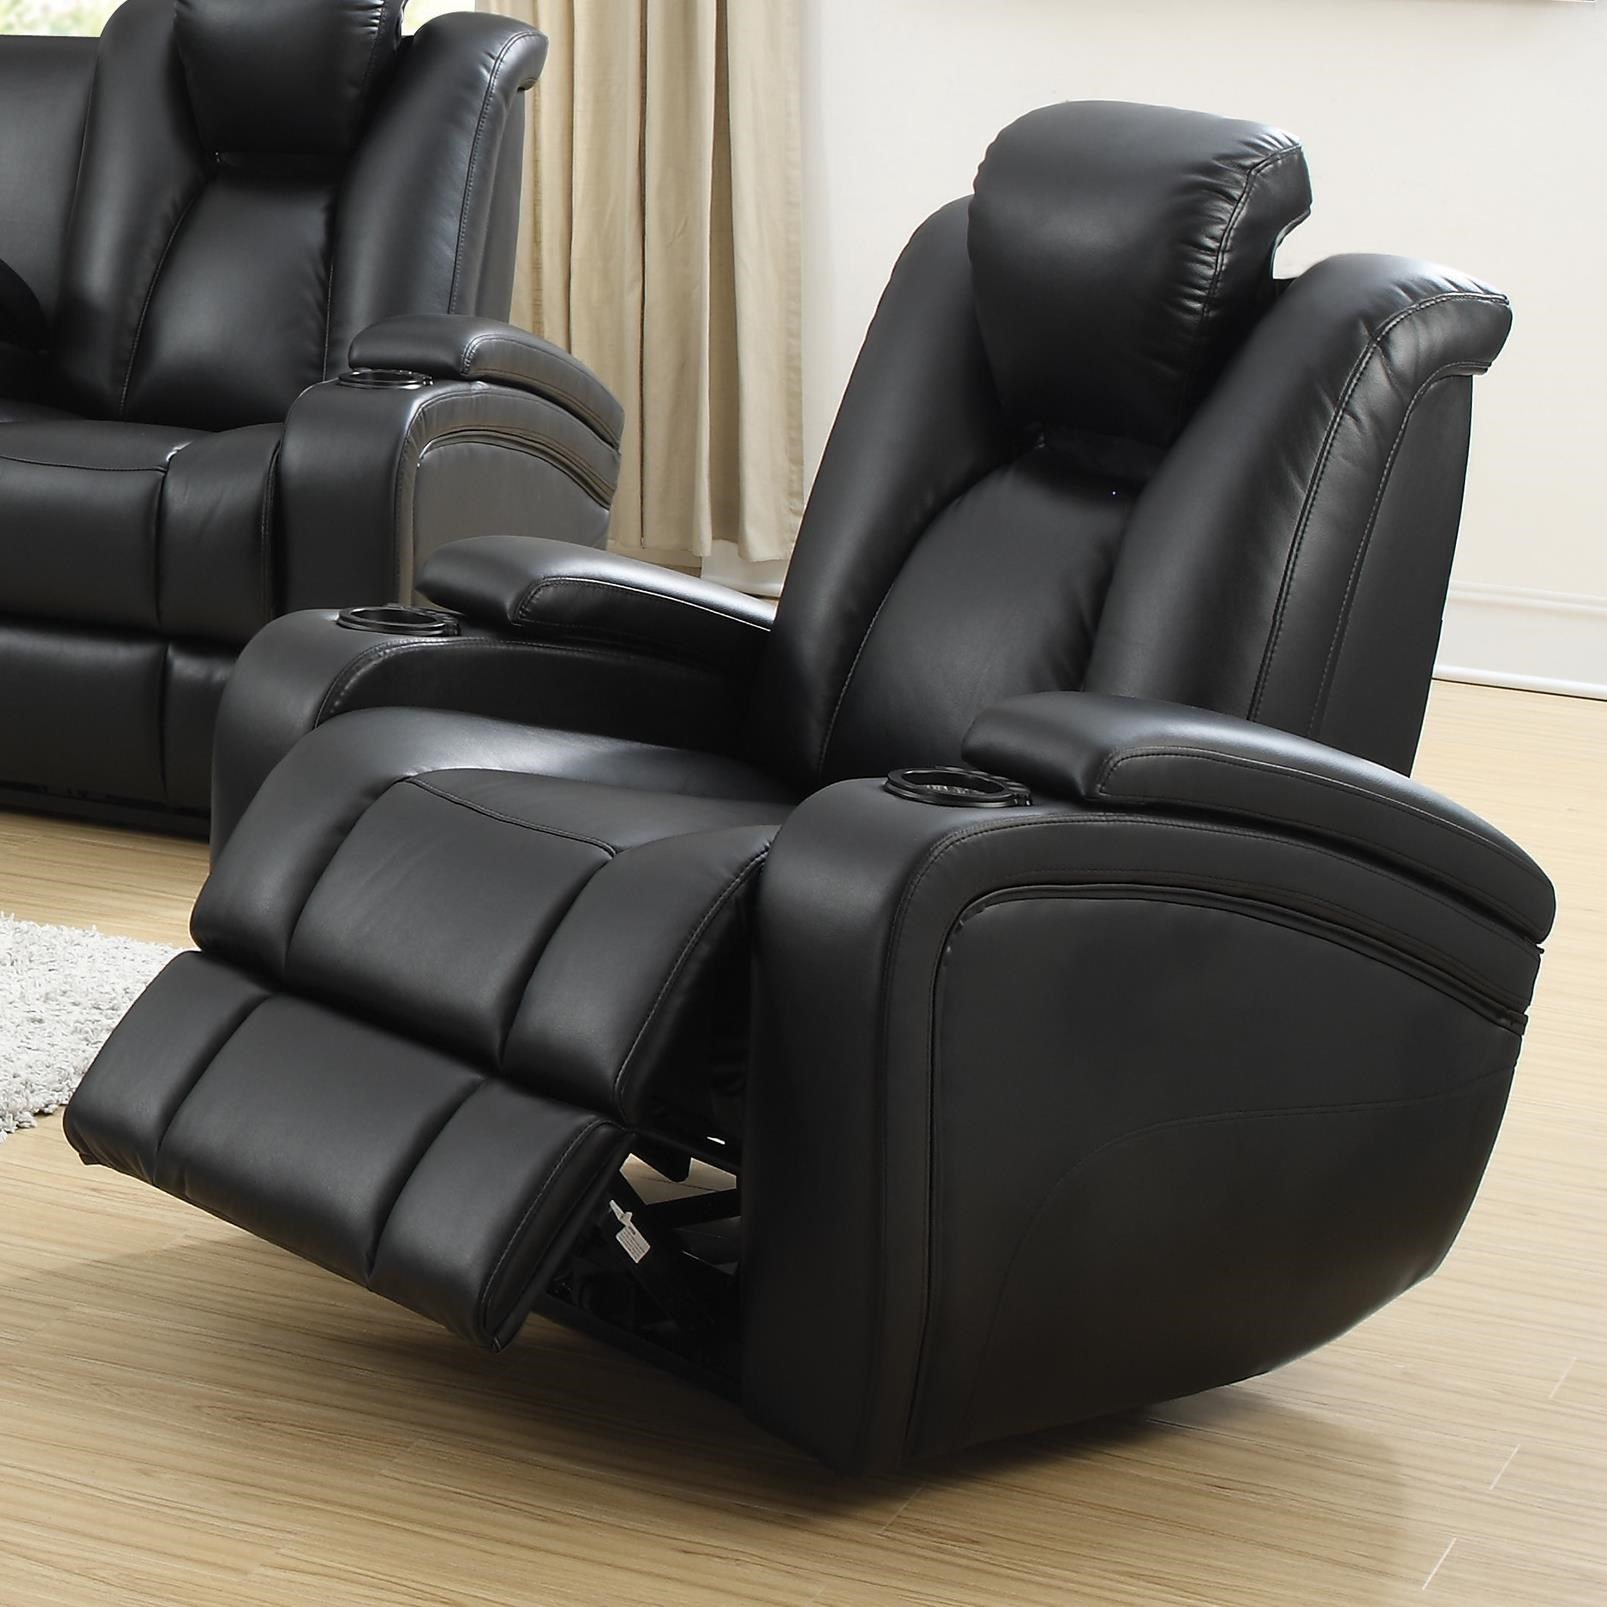 Coaster Delange Power Recliner with Adjustable Headrest u0026 Storage in Armrests - Coaster Fine Furniture : height adjustable recliner chair - islam-shia.org